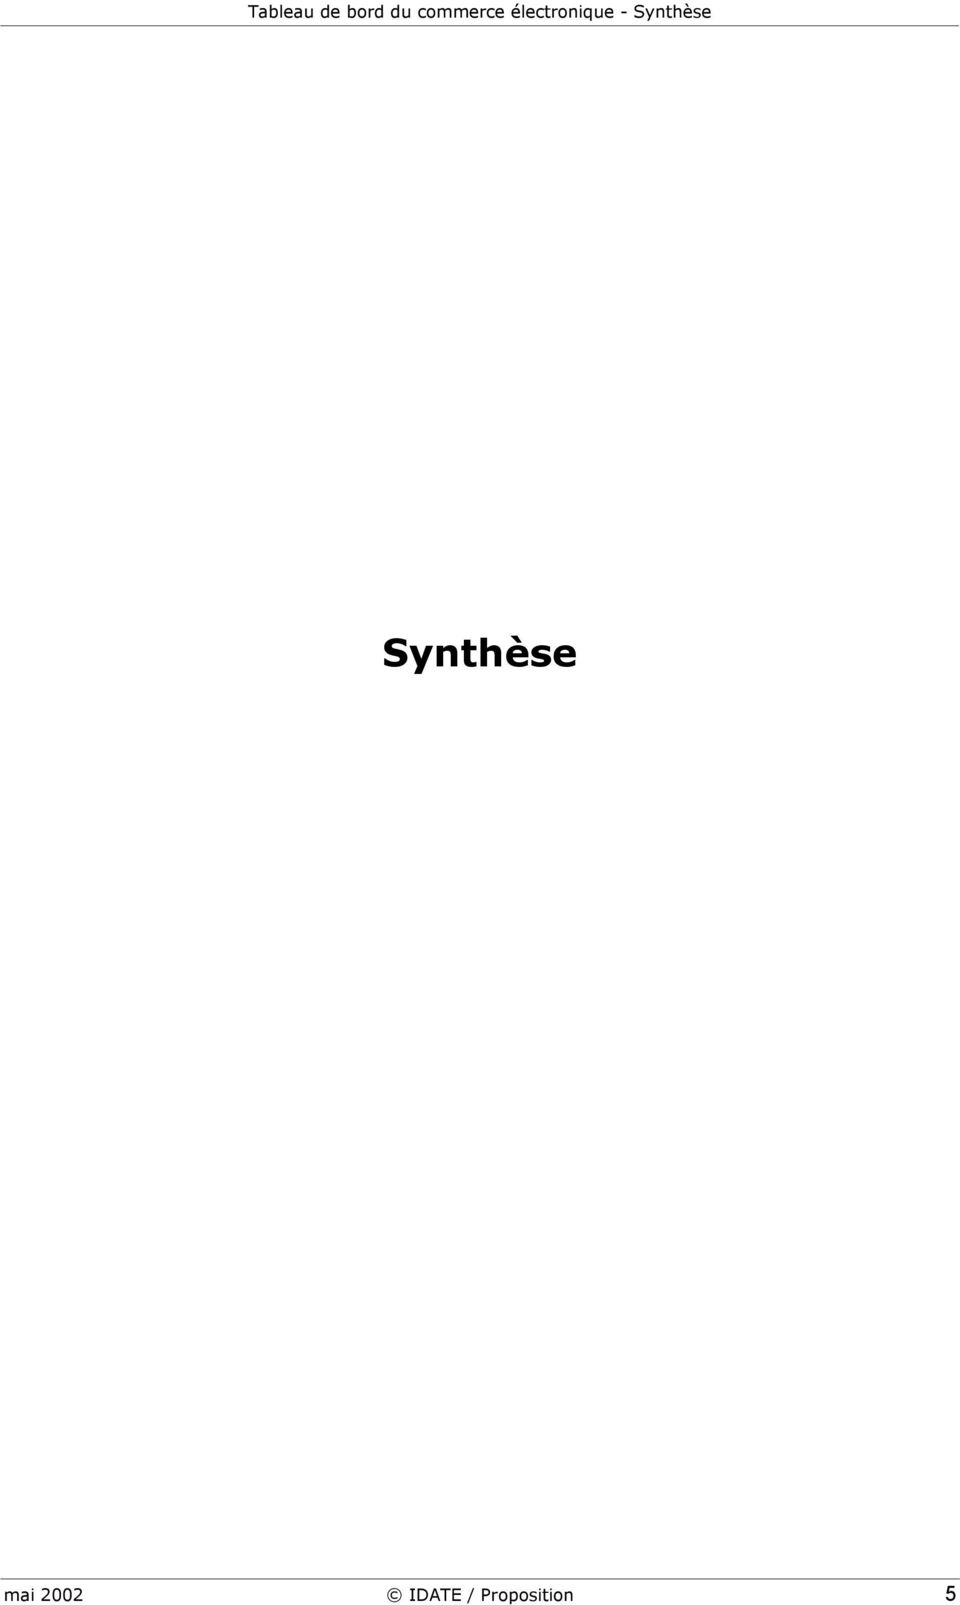 - Synthèse Synthèse